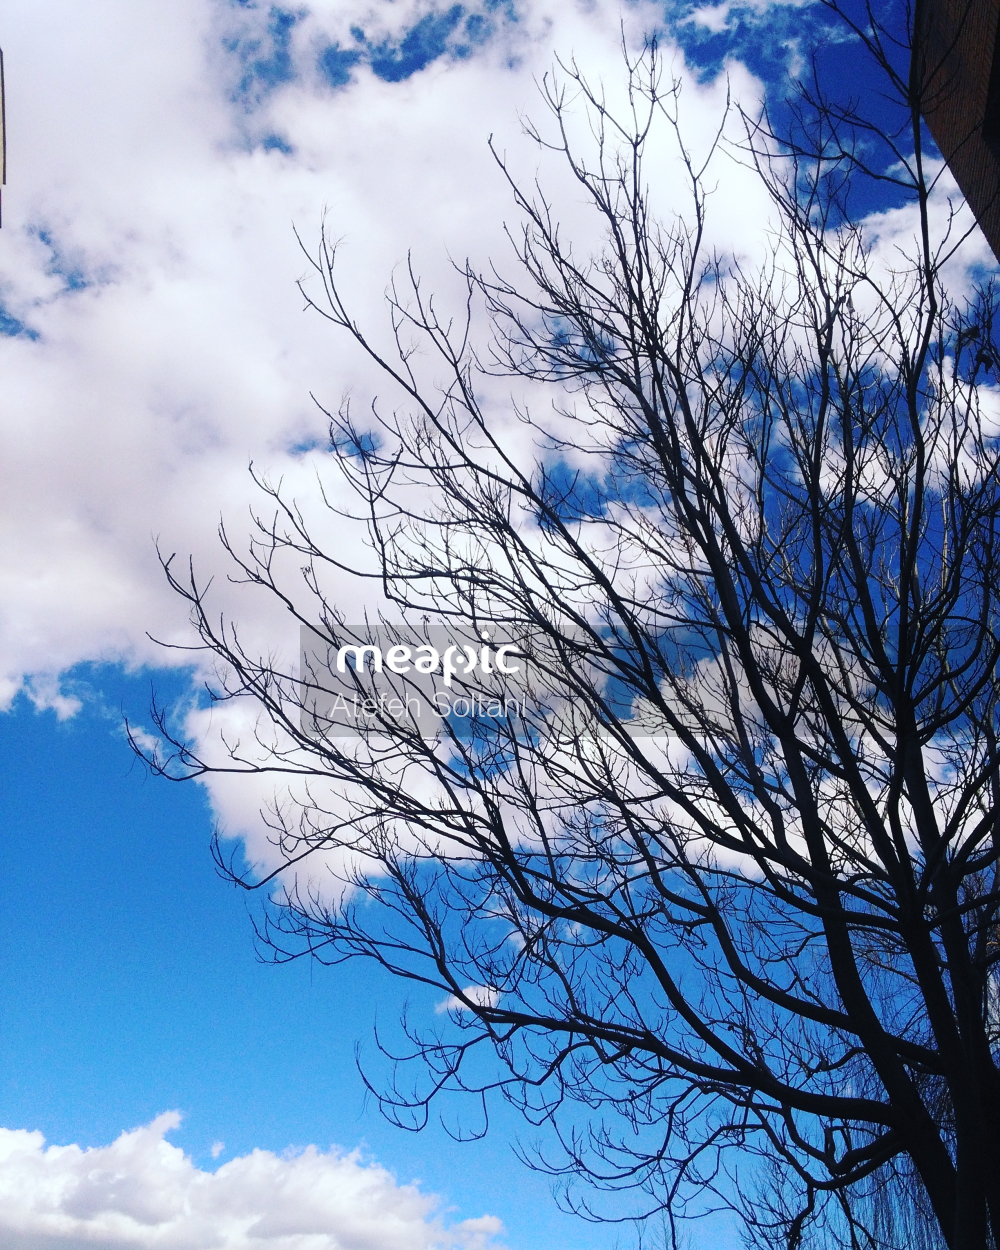 Tree In Front Of A Cloudy Blue Sky Stock Photo · Meapic